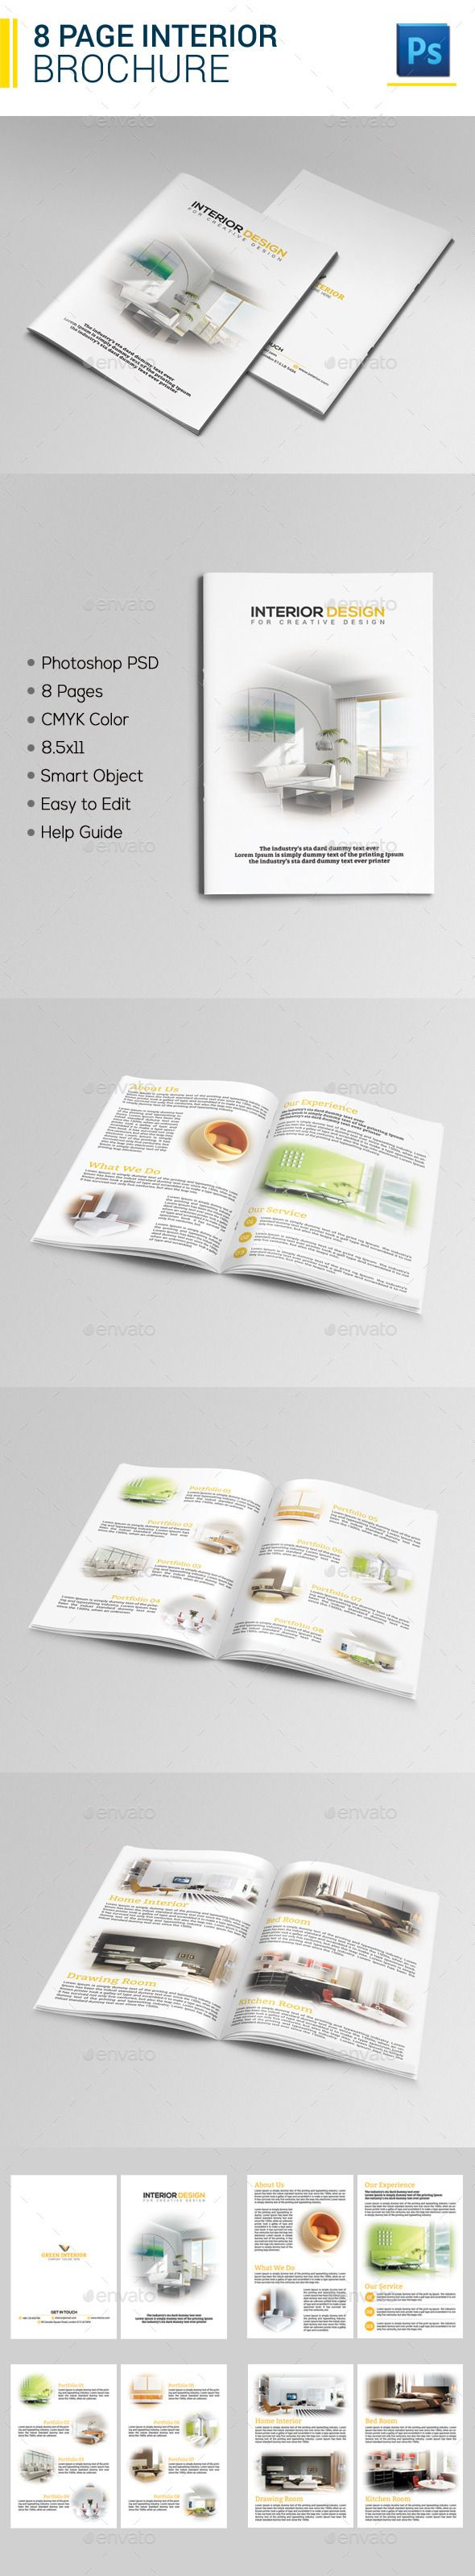 Page Interior Brochure Brochures Template And Interiors - 8 page brochure template